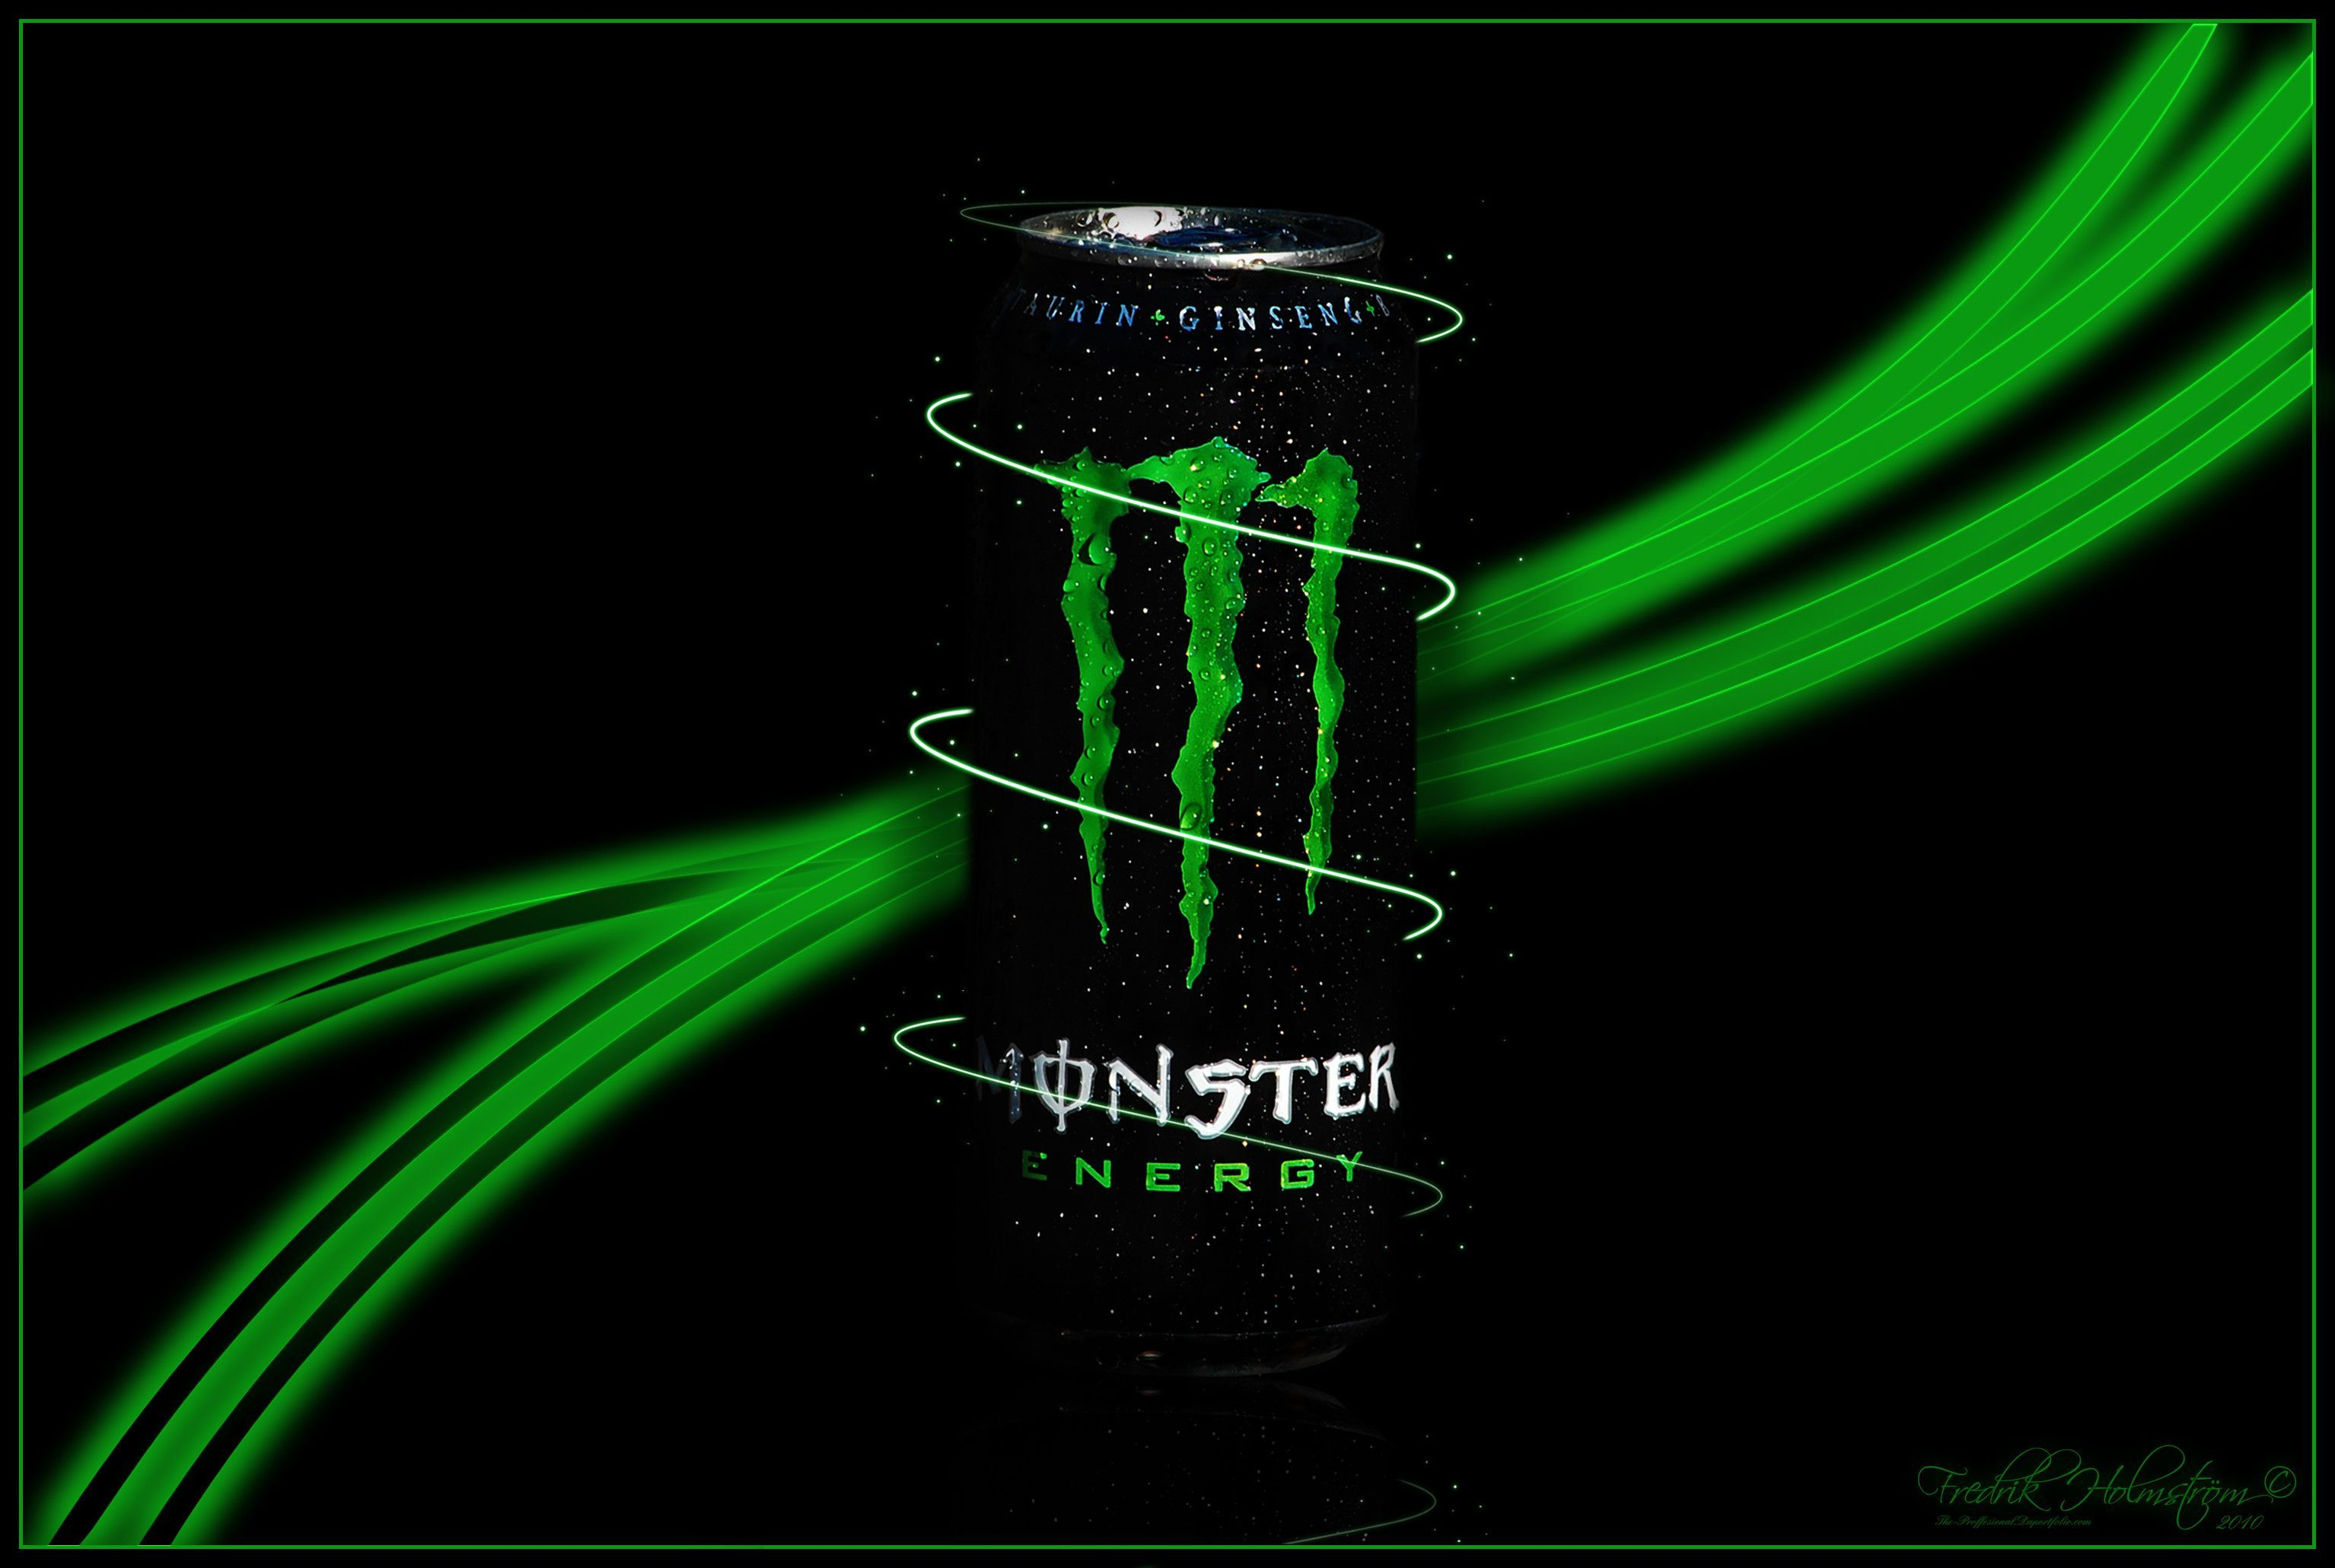 Monster Energy Wallpapers Hd Wallpaper Cave Desktop Wallpaper Pink Wallpaper Iphone Wallpaper